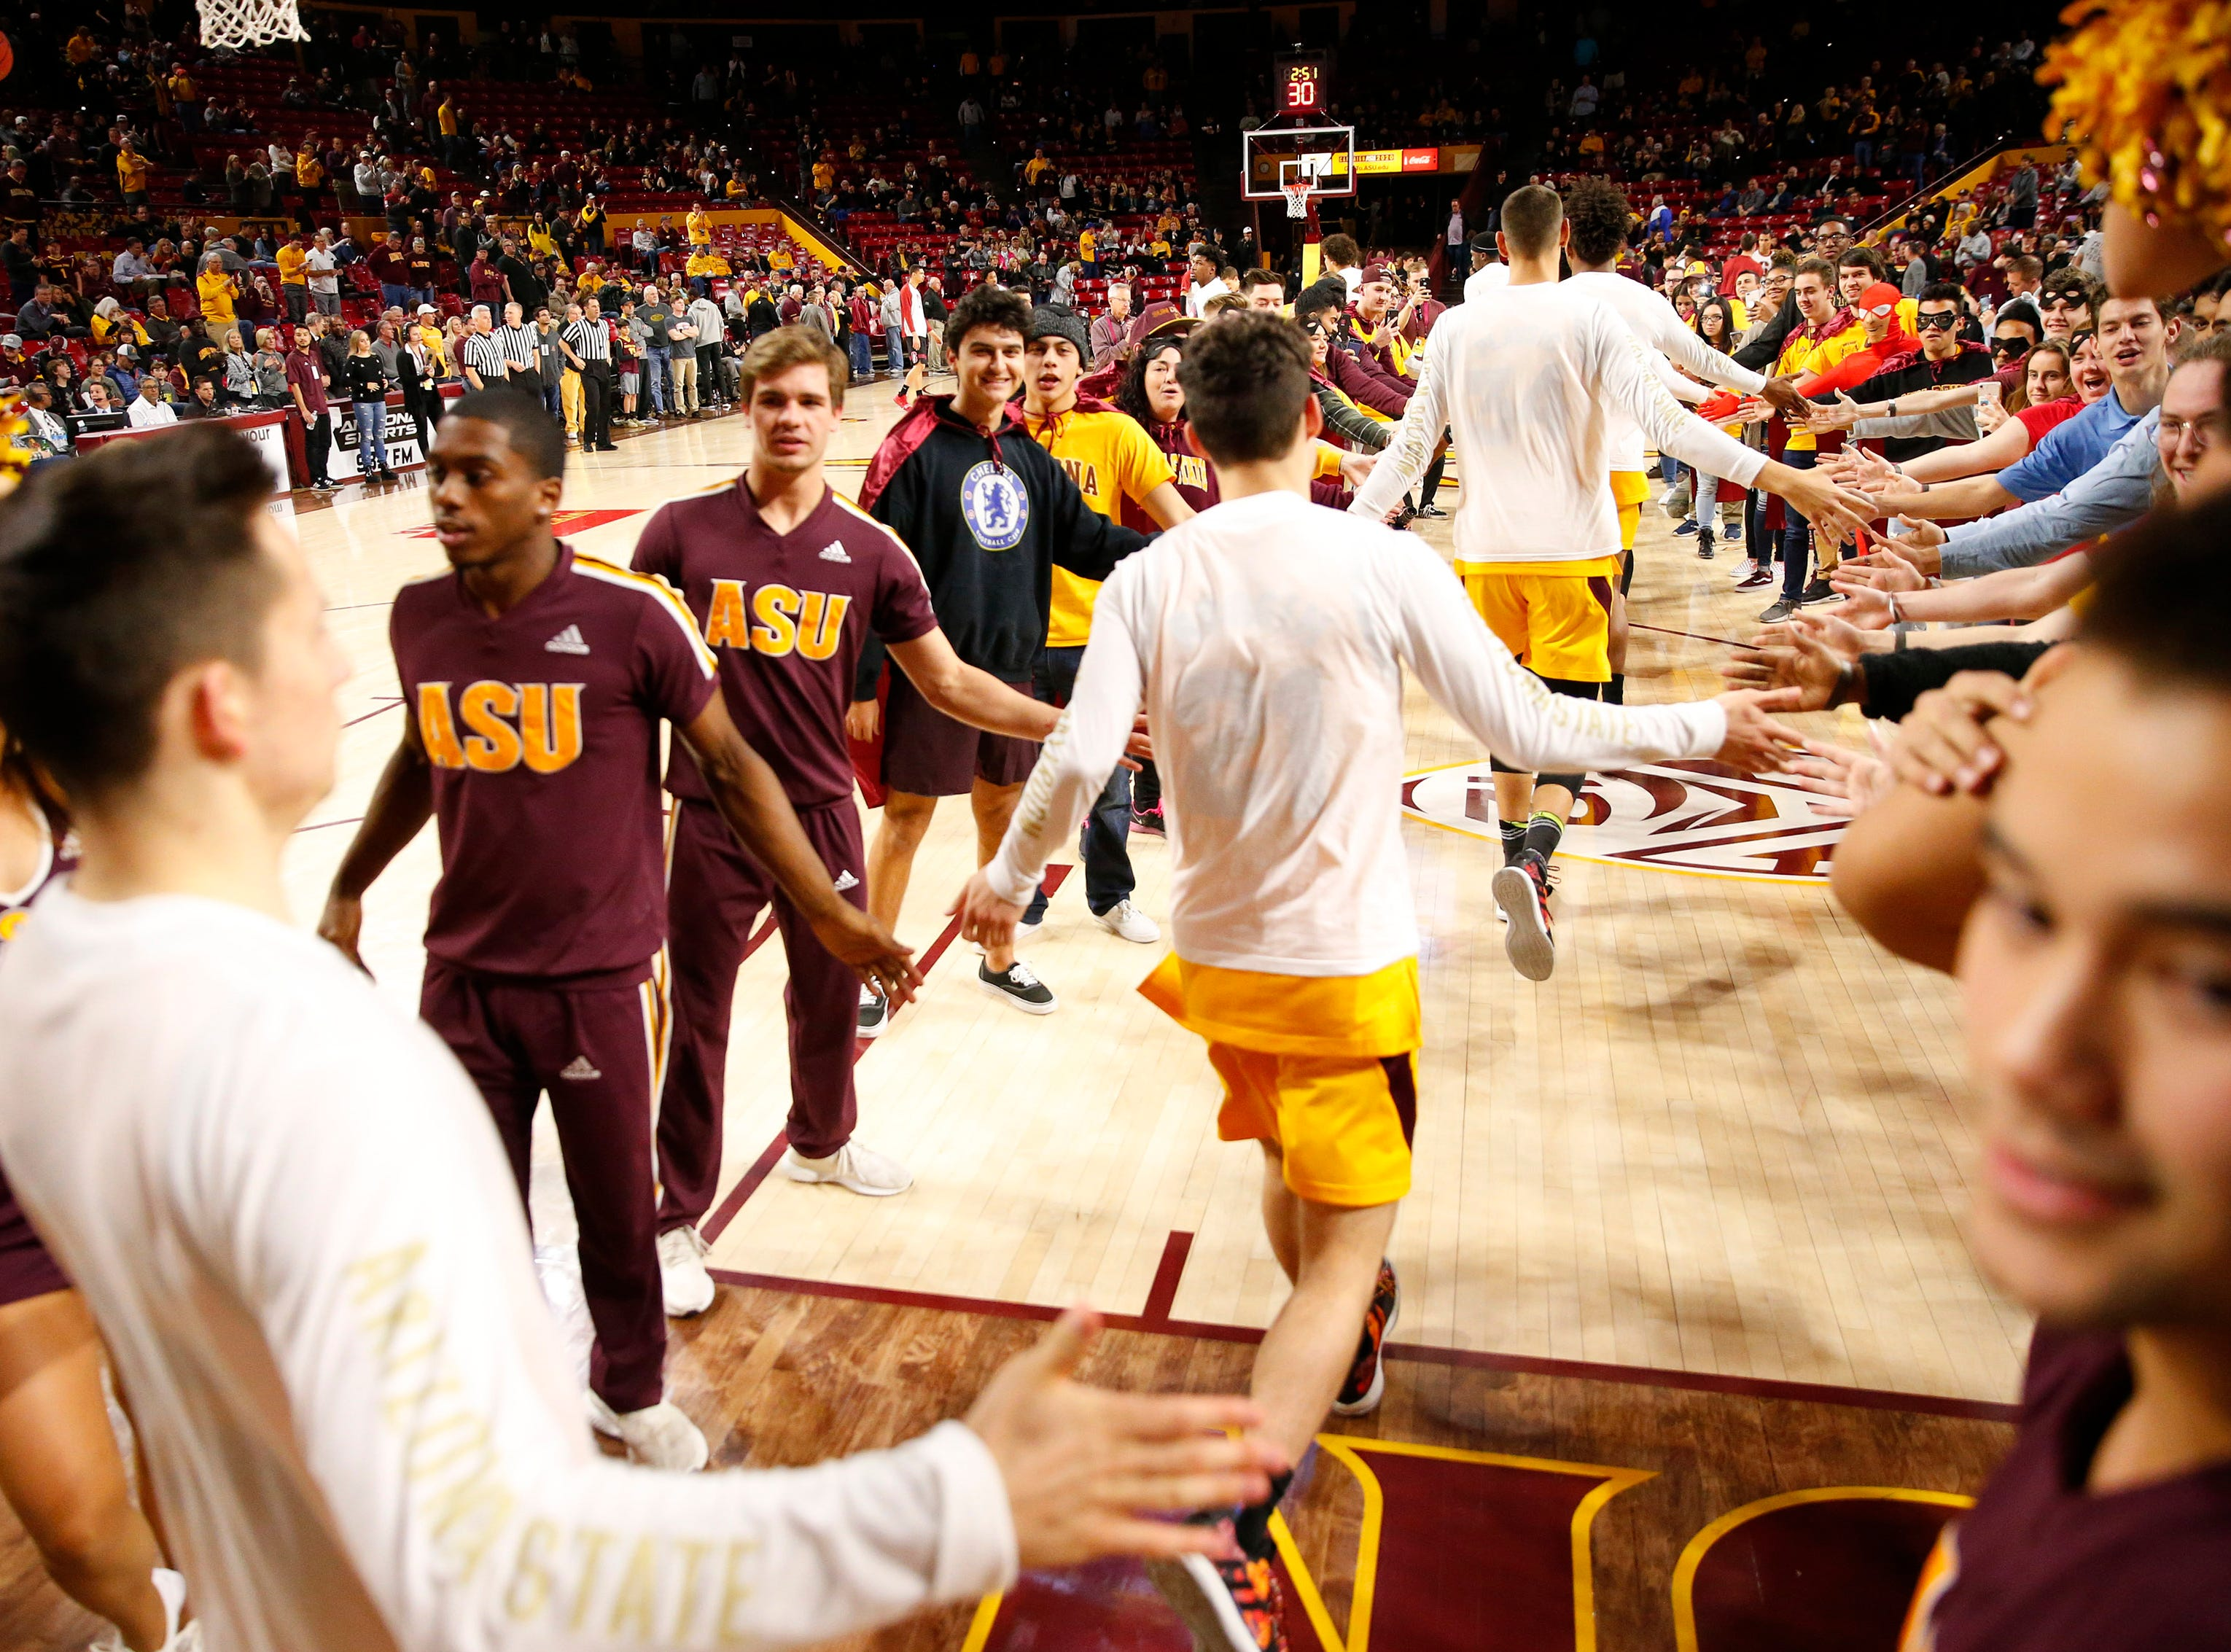 Arizona State players enter the court before playing against Stanford in Tempe Feb. 20, 2019.